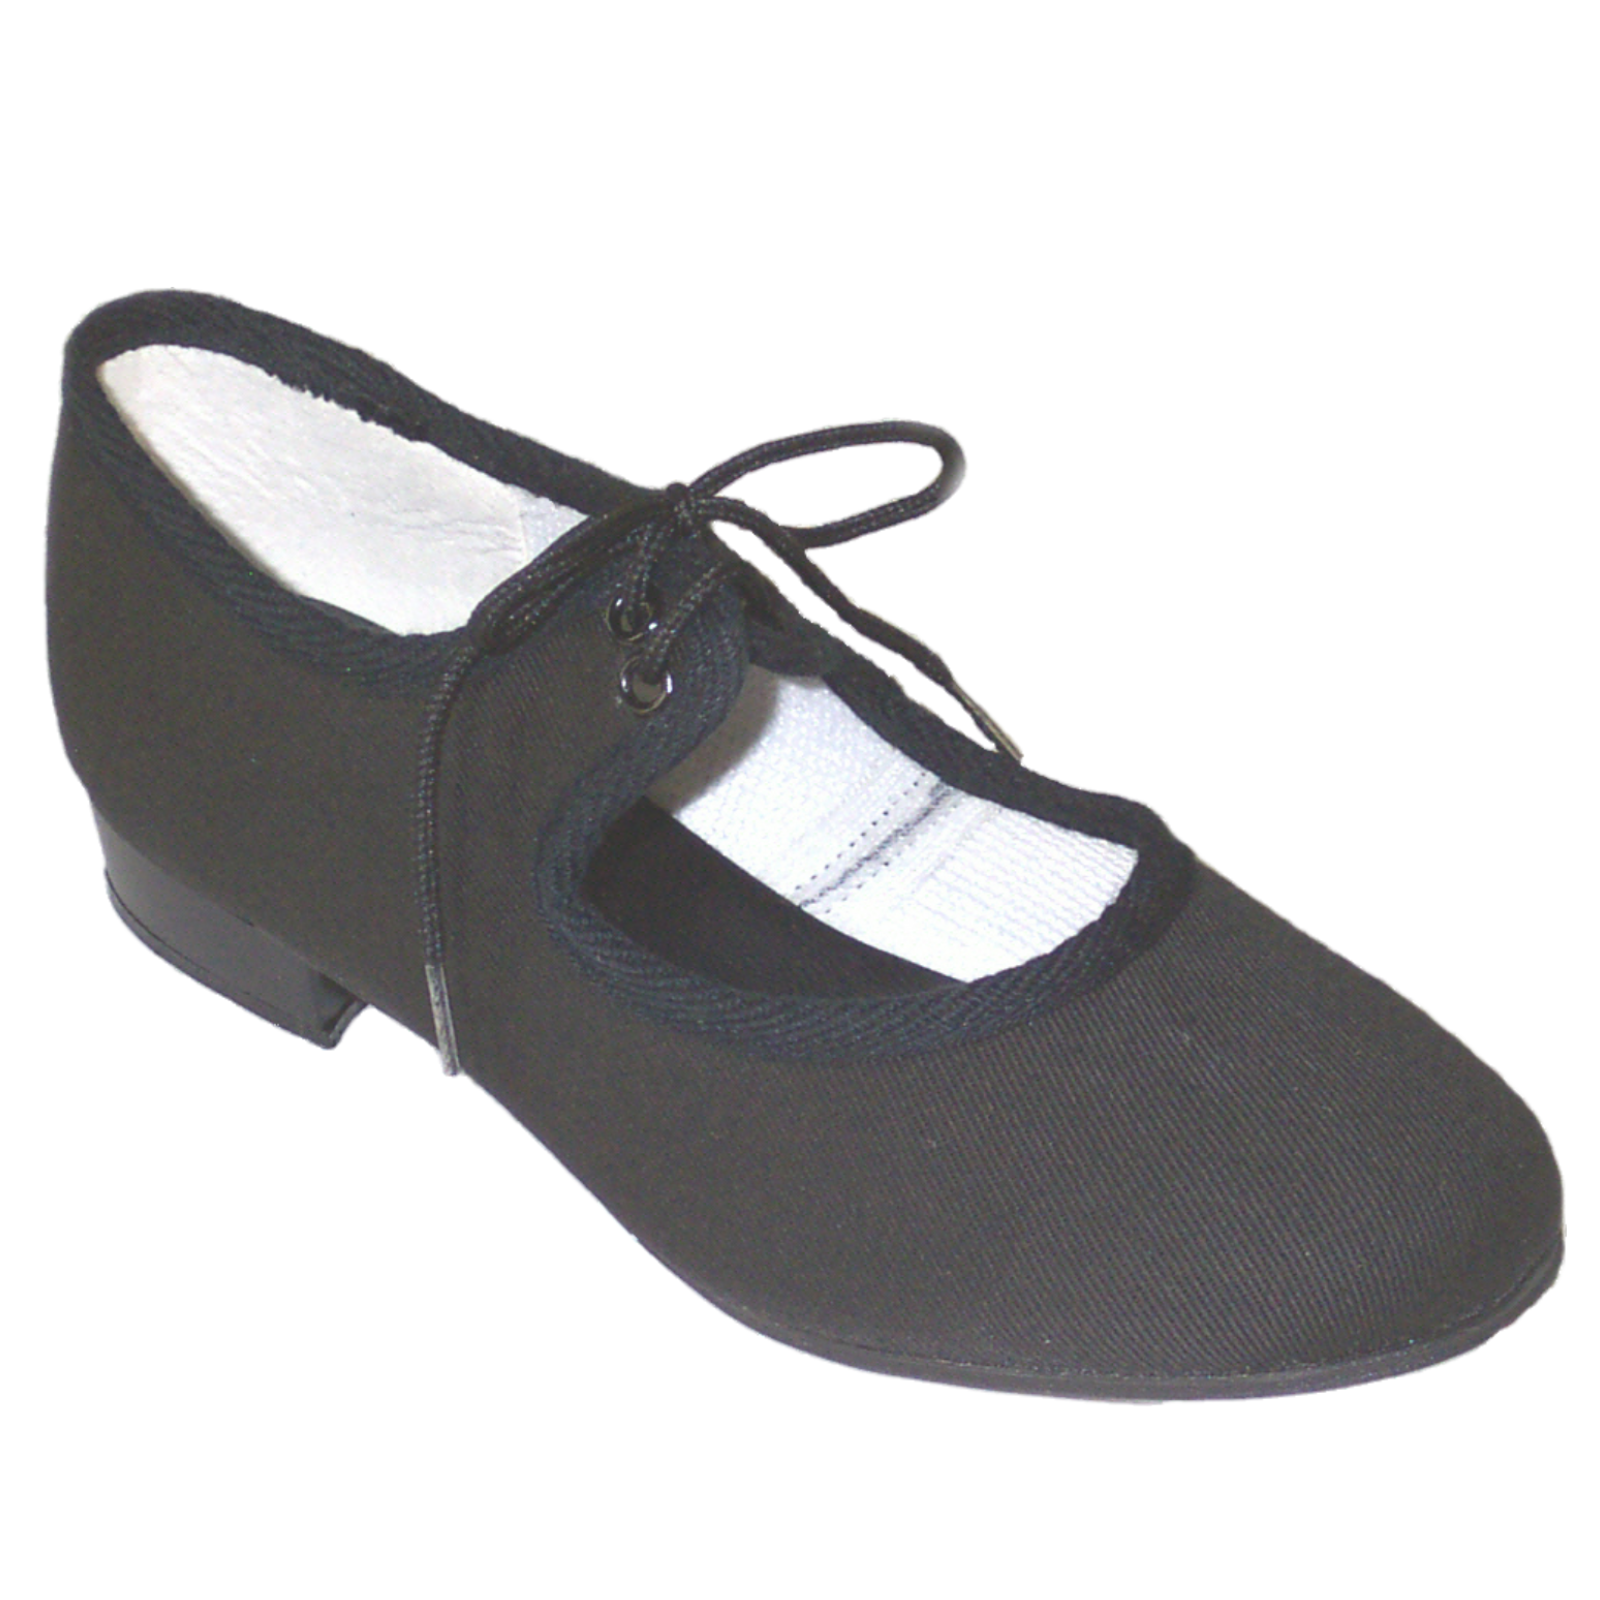 most popular 50% off store BLACK CANVAS LOW HEEL TAP SHOES - Dancers World